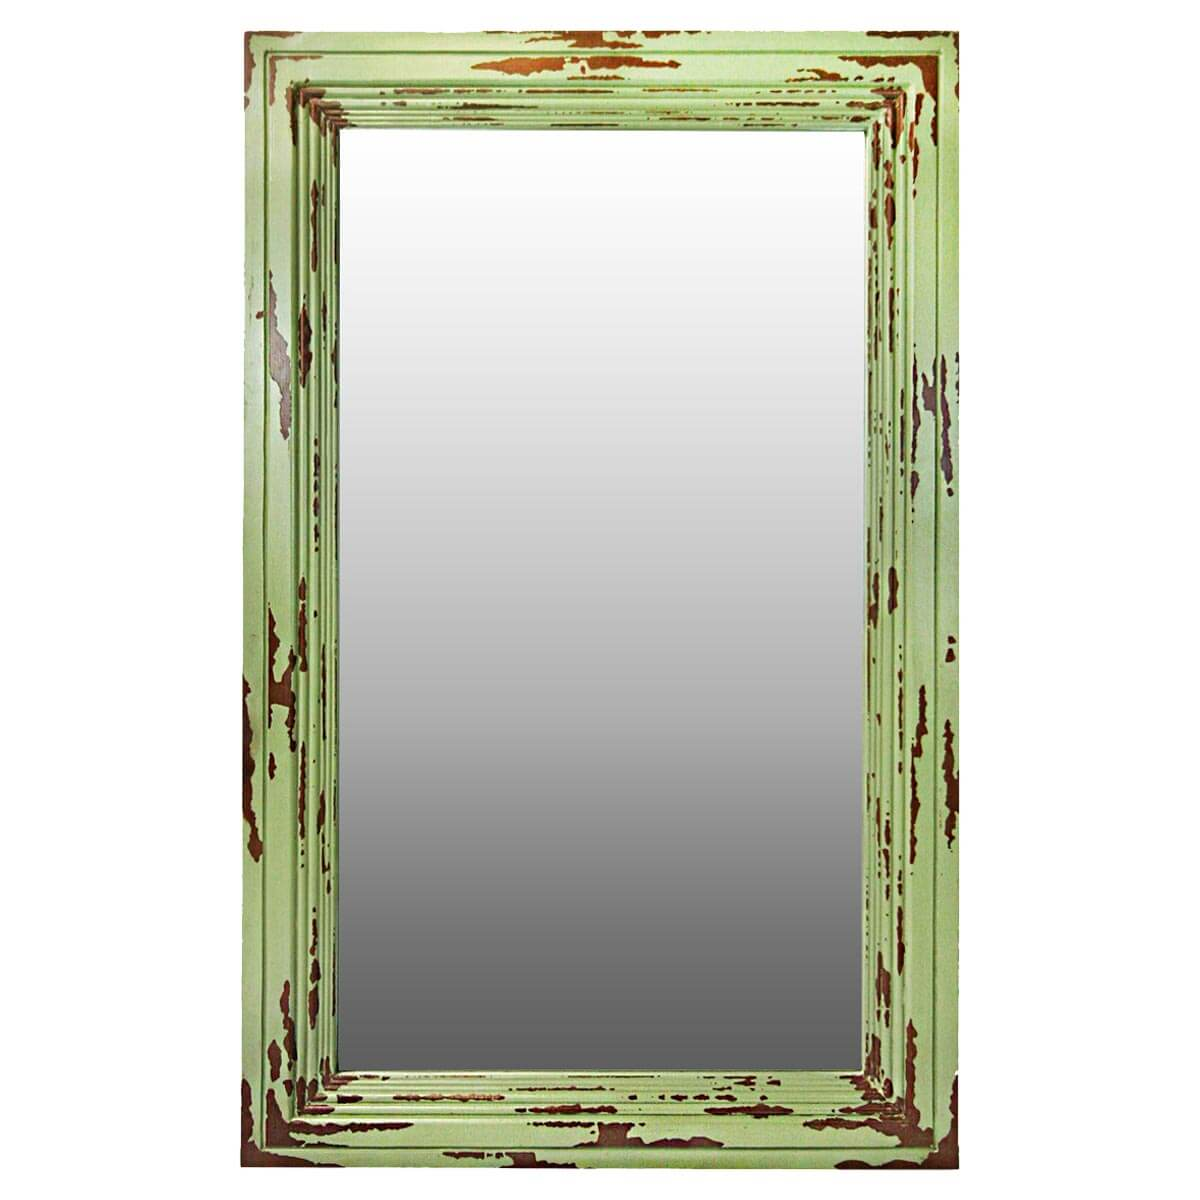 Frontier Rustic Acacia Wood Green Distressed Wall Mirror Frame